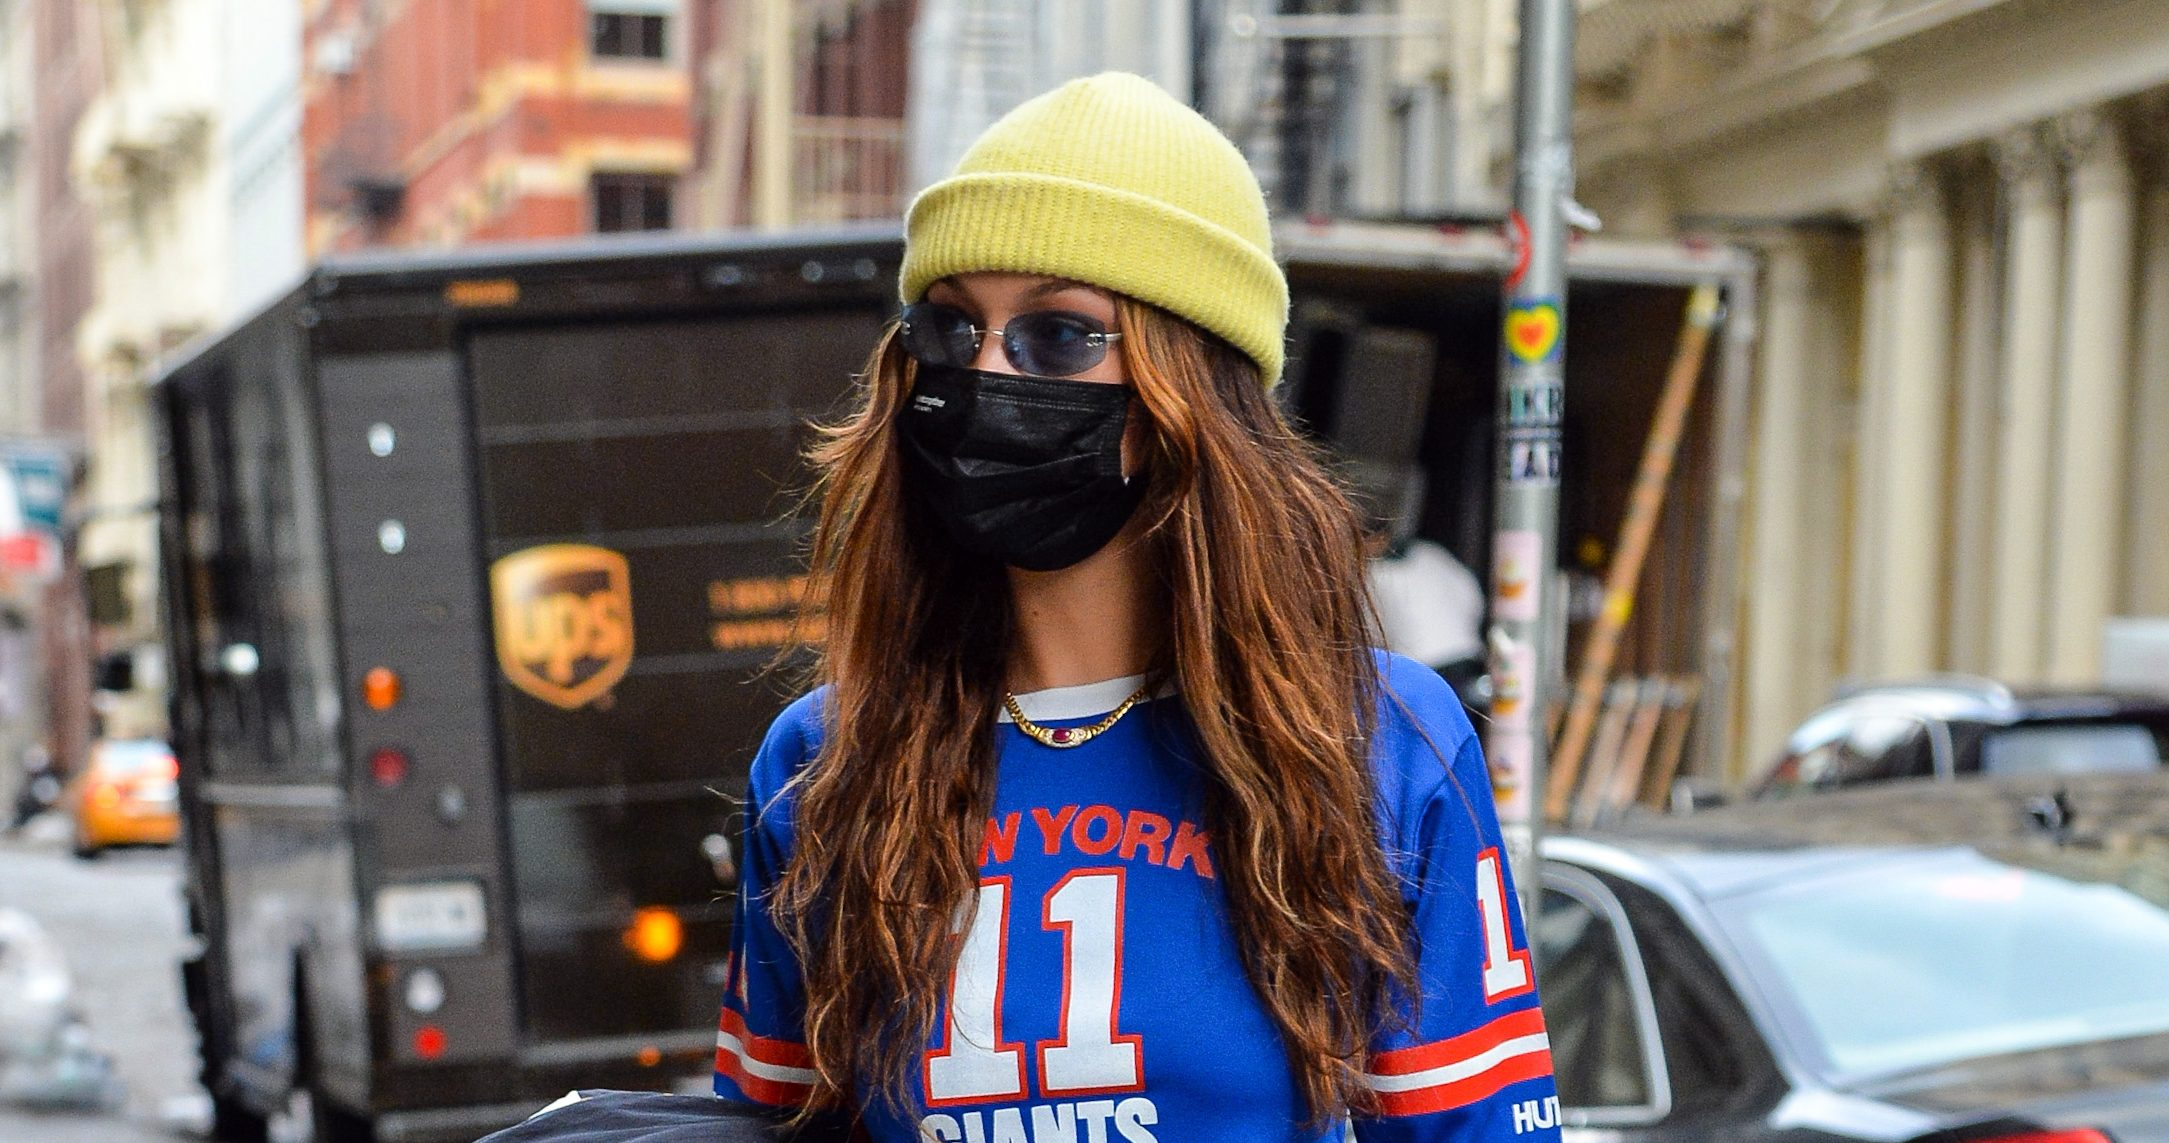 Bella Hadid Goes Retro In New York Giants Jersey And Black Sneakers Footwear News